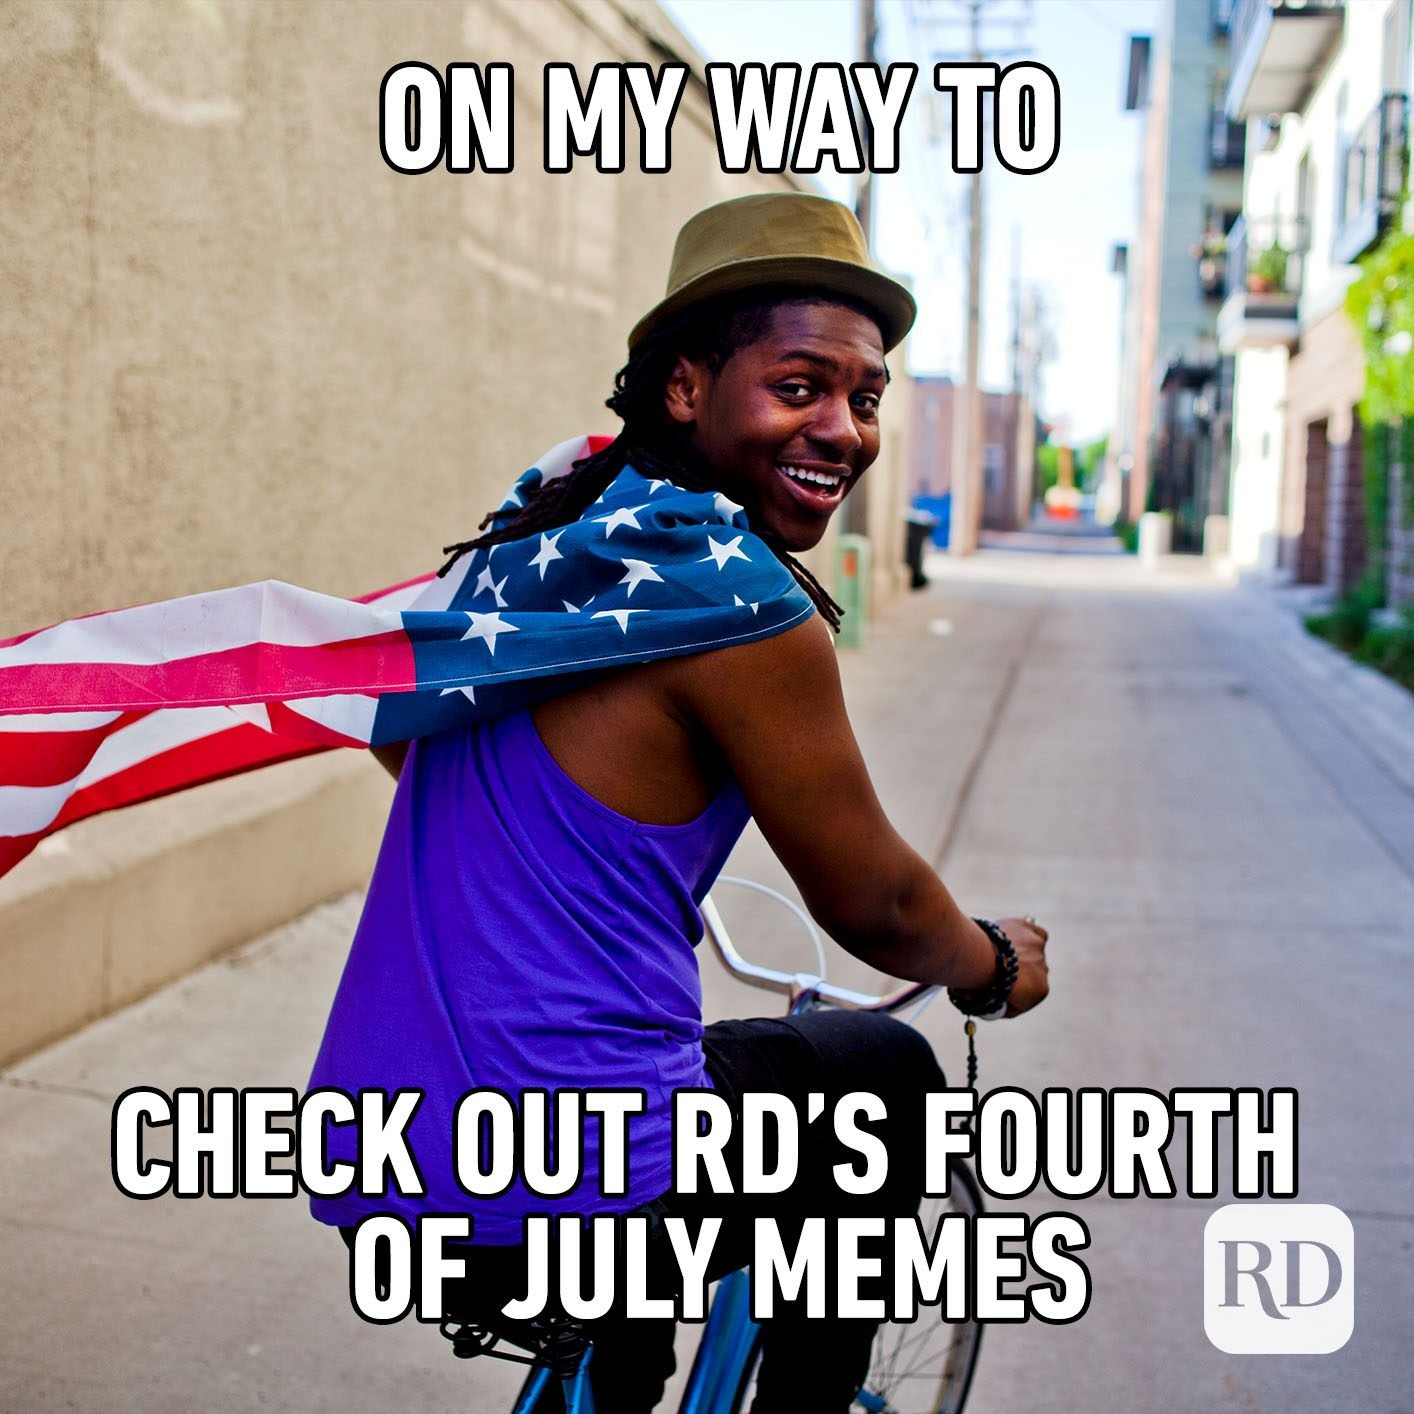 """Man wearing American flag and riding bike with meme text: """"On my way to check out RD's Fourth of July memes"""""""